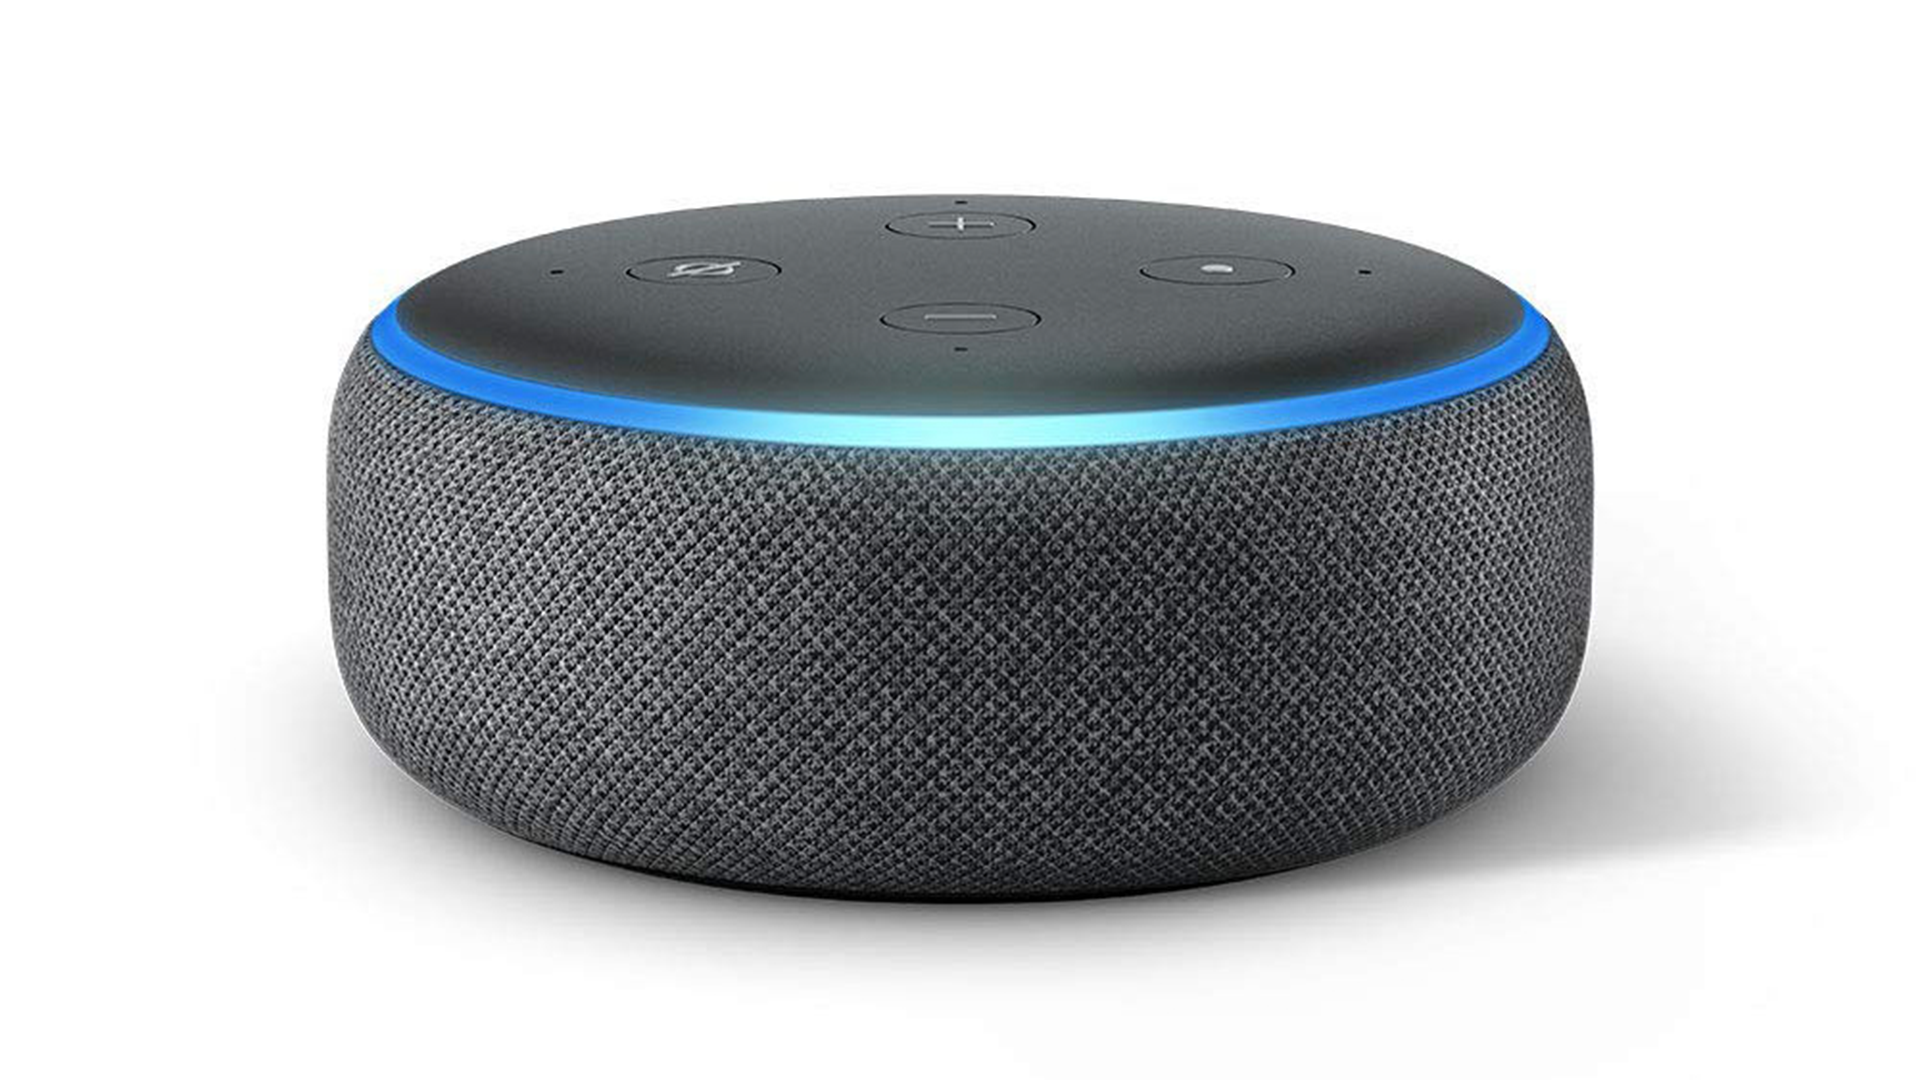 amazon echo connect to speaker